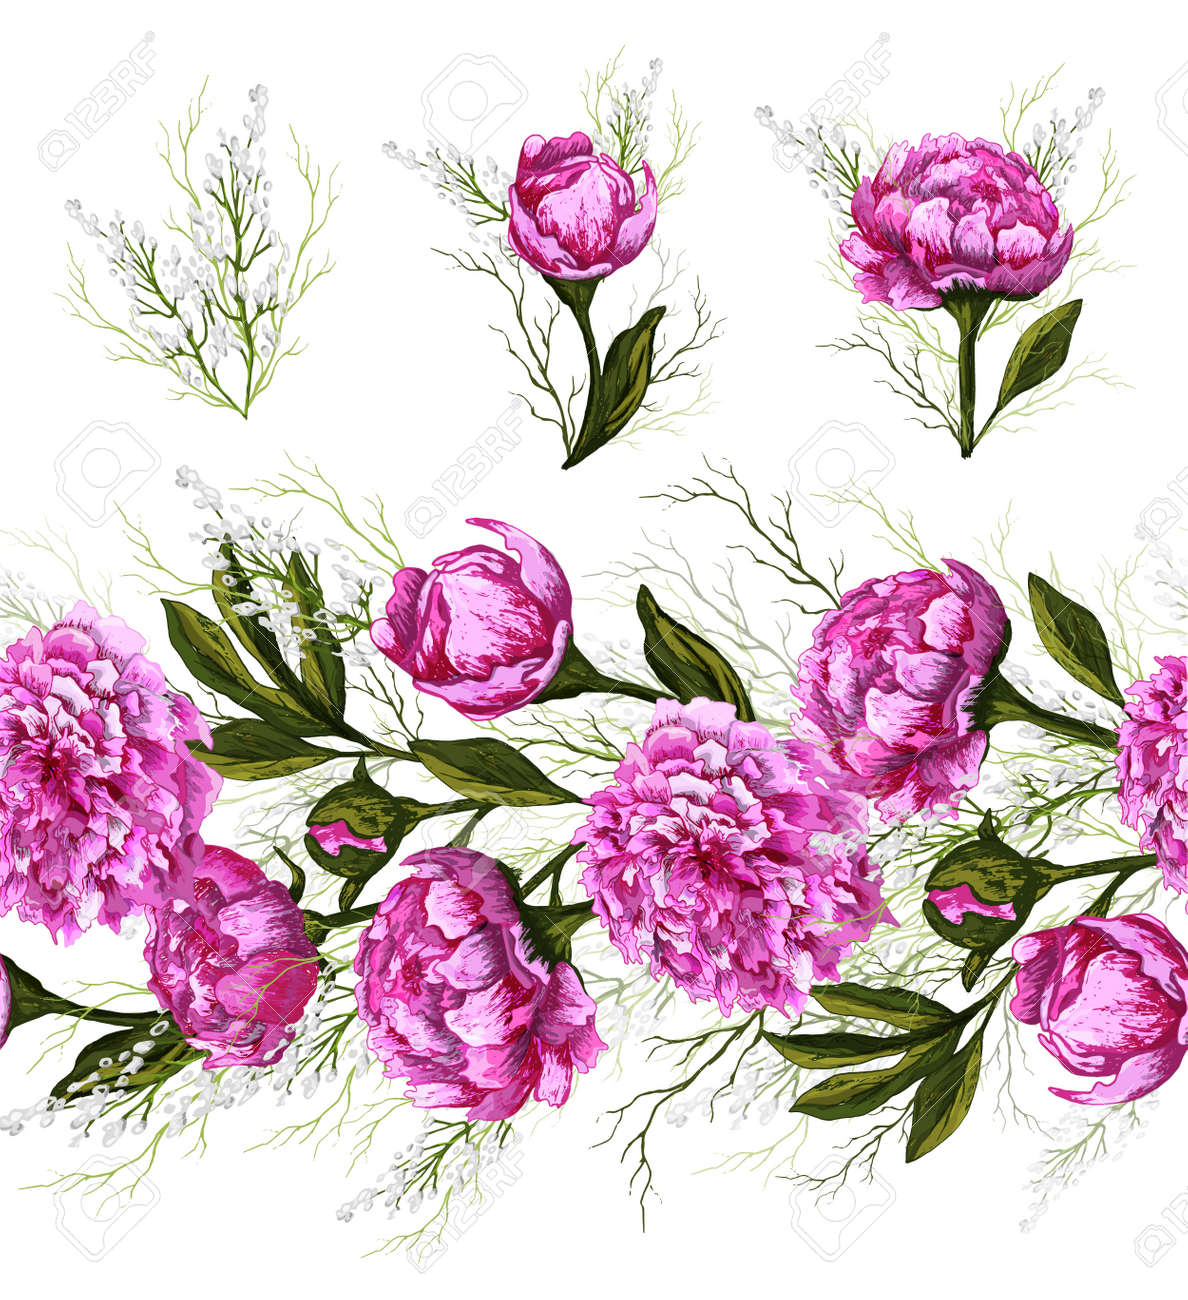 Endless brush pattern with spring peony flowers and greenery. hand-drawn Doodle in a realistic style. pink elements, horizontal border for seasonal design. vintage style. - 158351236